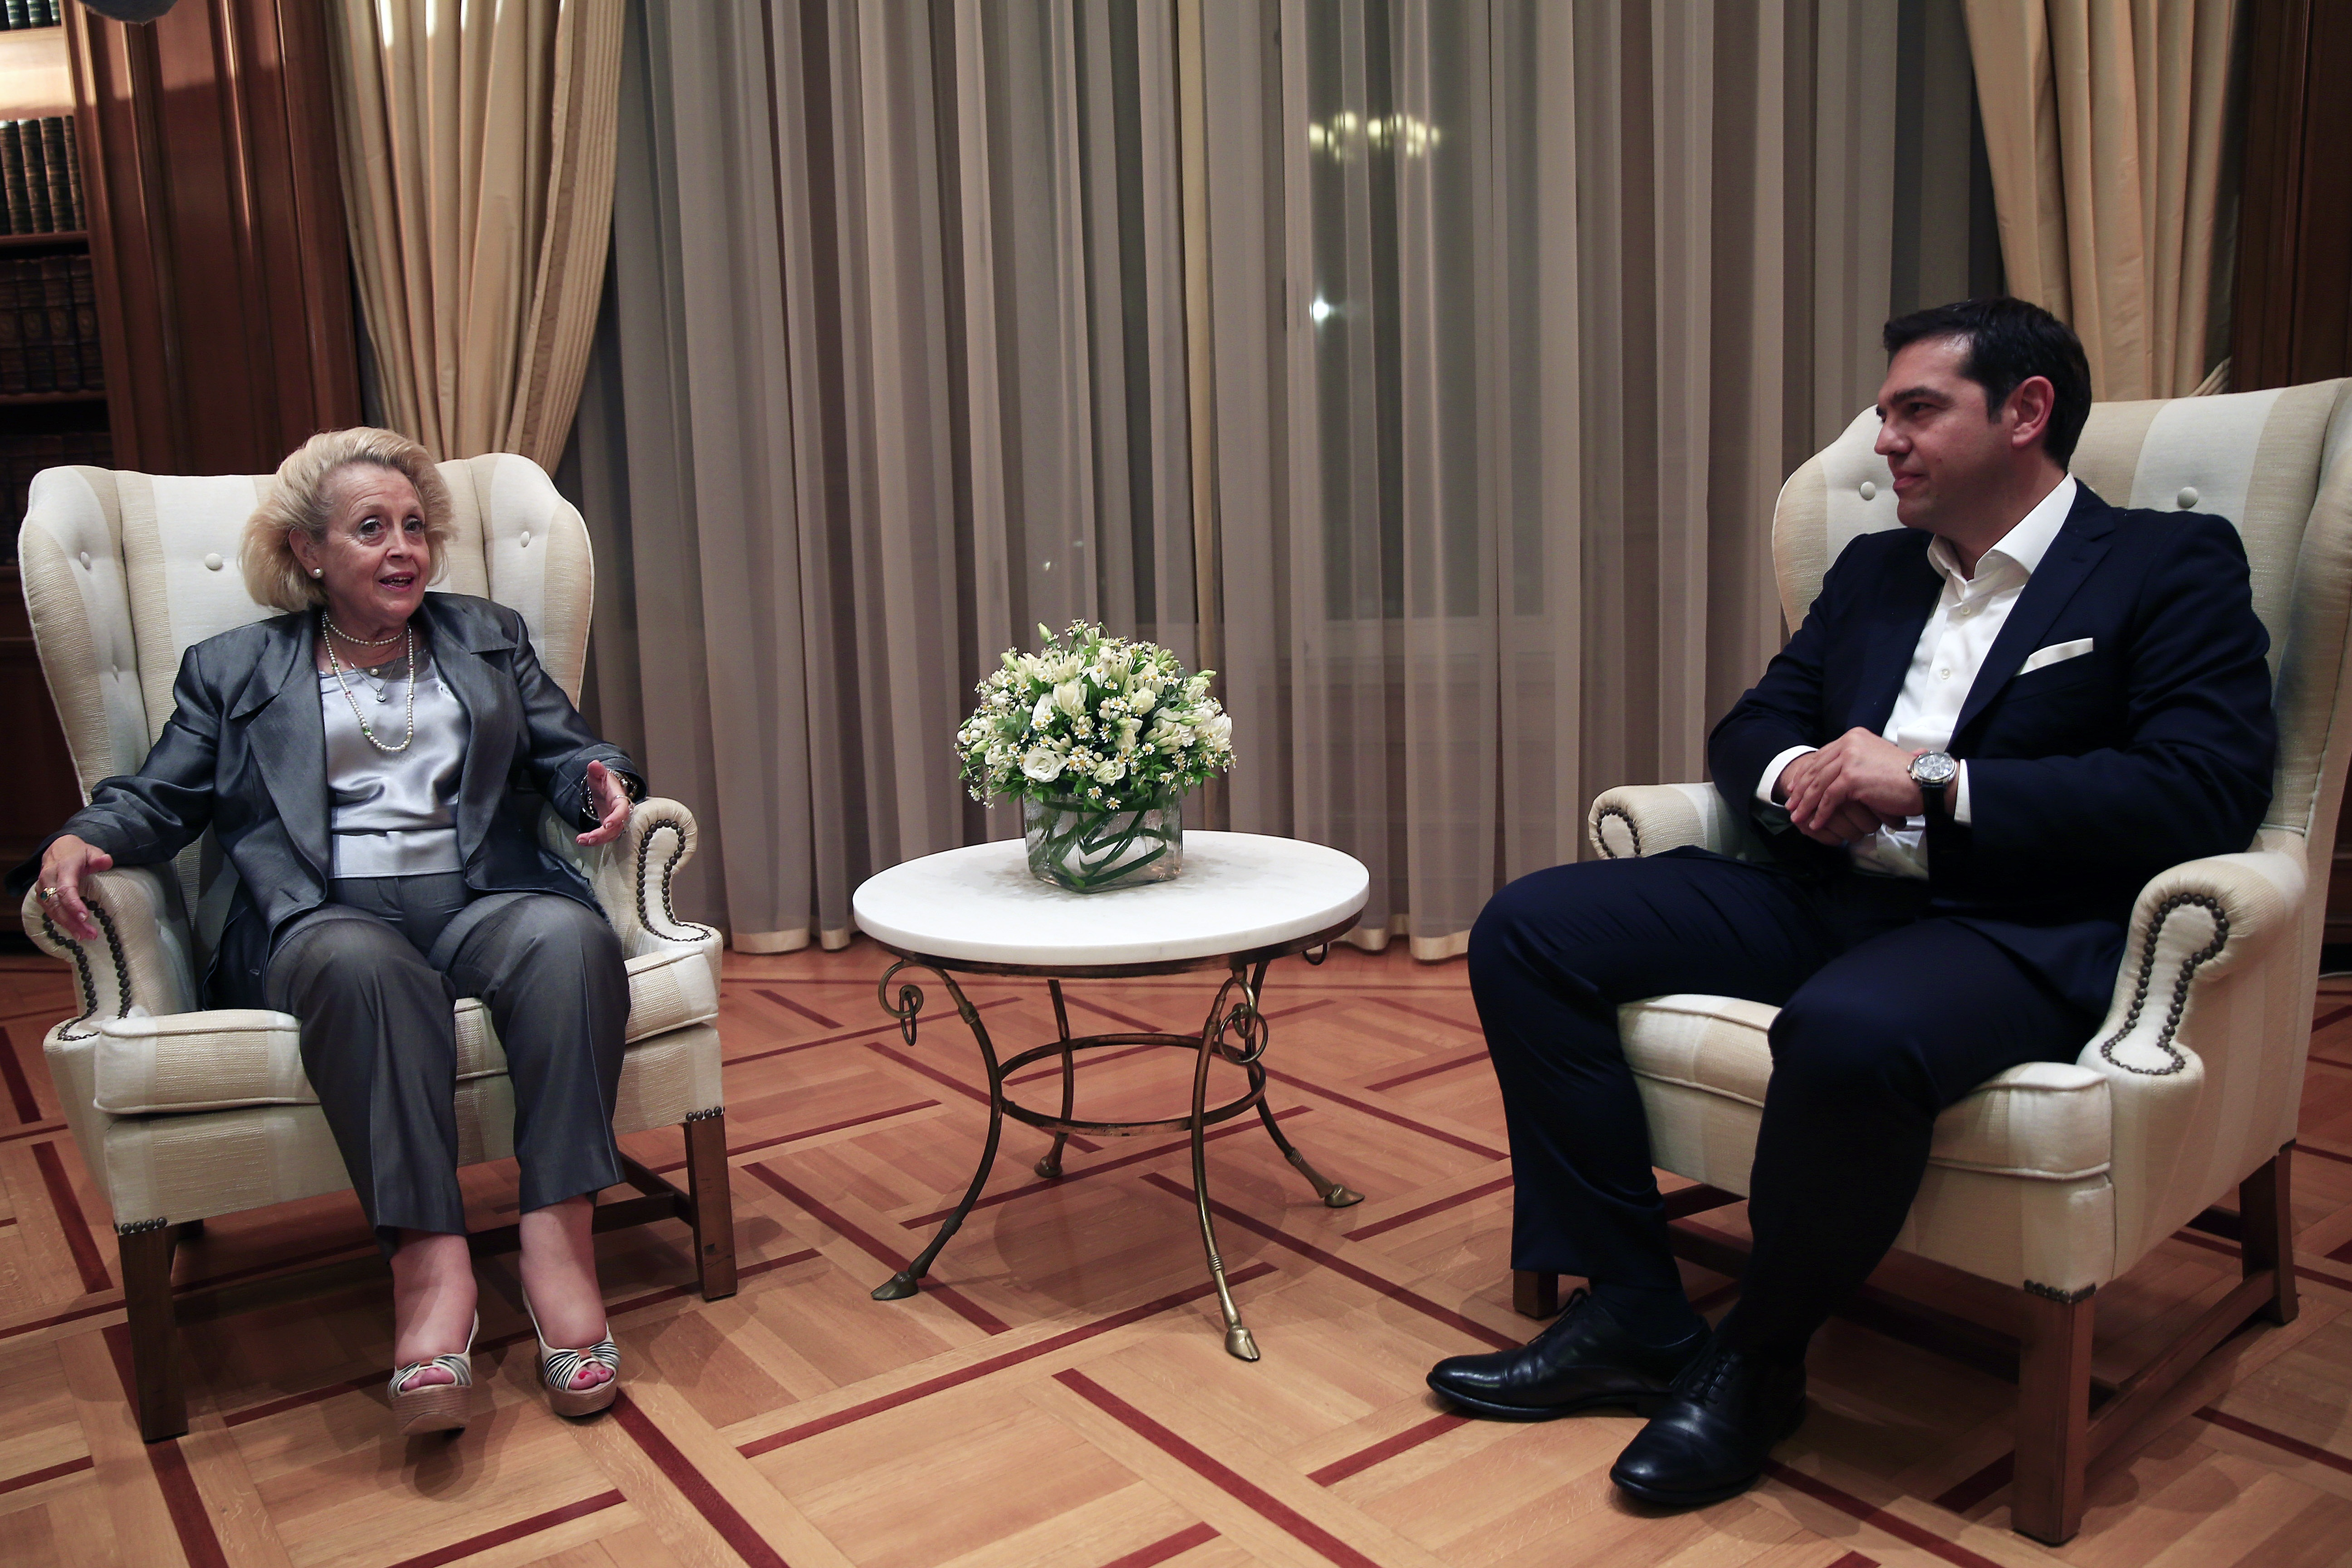 Greece's caretaker Prime Minister Vassiliki Thanou, left, speaks with the newly re-elected Prime Minister Alexis Tsipras during a hand out ceremony at Maximos Mansion in Athens, Monday, Sept. 21, 2015. Syriza's victory Sunday marks a personal triumph for Tsipras, who served as prime minister between January and August u0097 a tumultuous period that saw Greece's future in the 19-country eurozone come under real threat and strict banking controls imposed. (AP Photo/Lefteris Pitarakis)